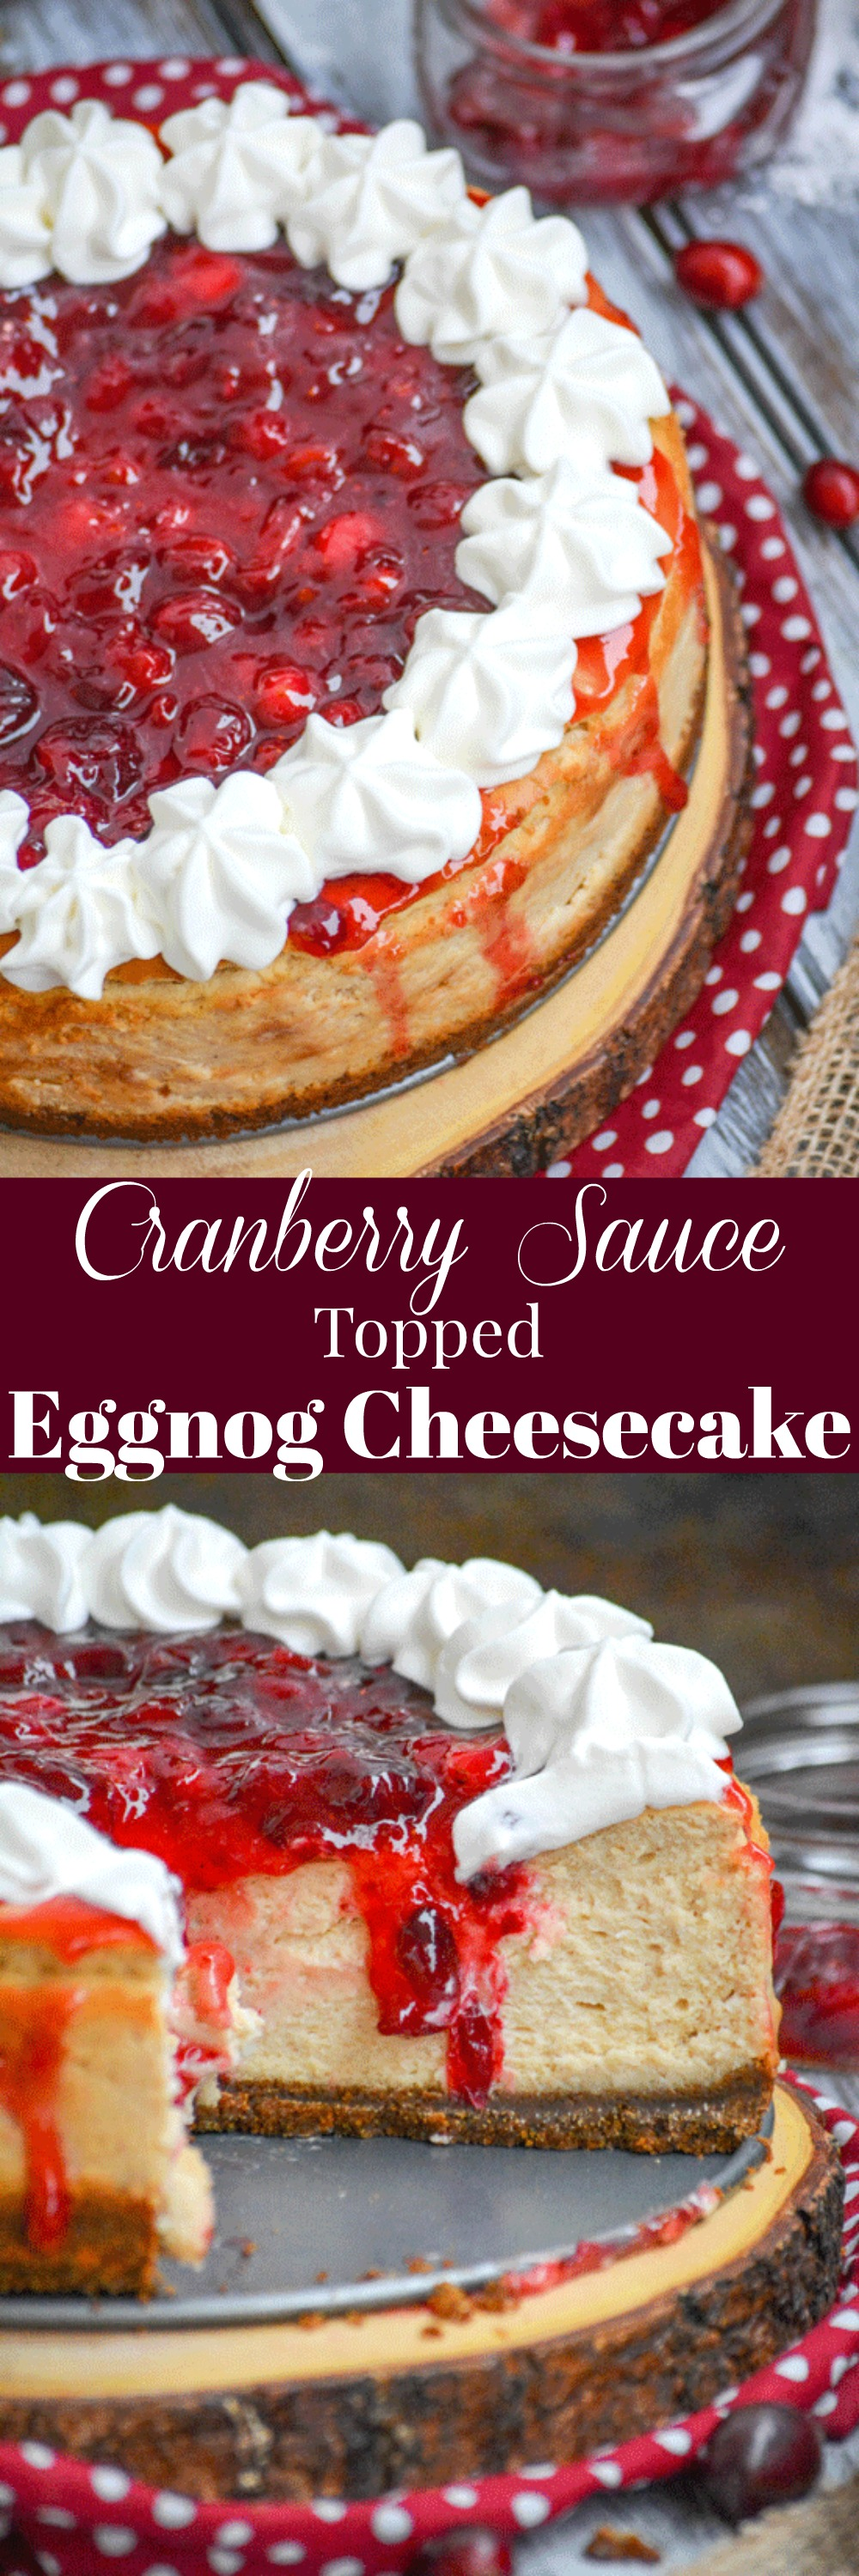 Cheesecake is a pretty universal dessert, perfect for anytime of the year. Infuse yours with the flavors of the Holiday season with our Cranberry Sauce Topped Eggnog Cheesecake. It's a little Christmas miracle in every bite.